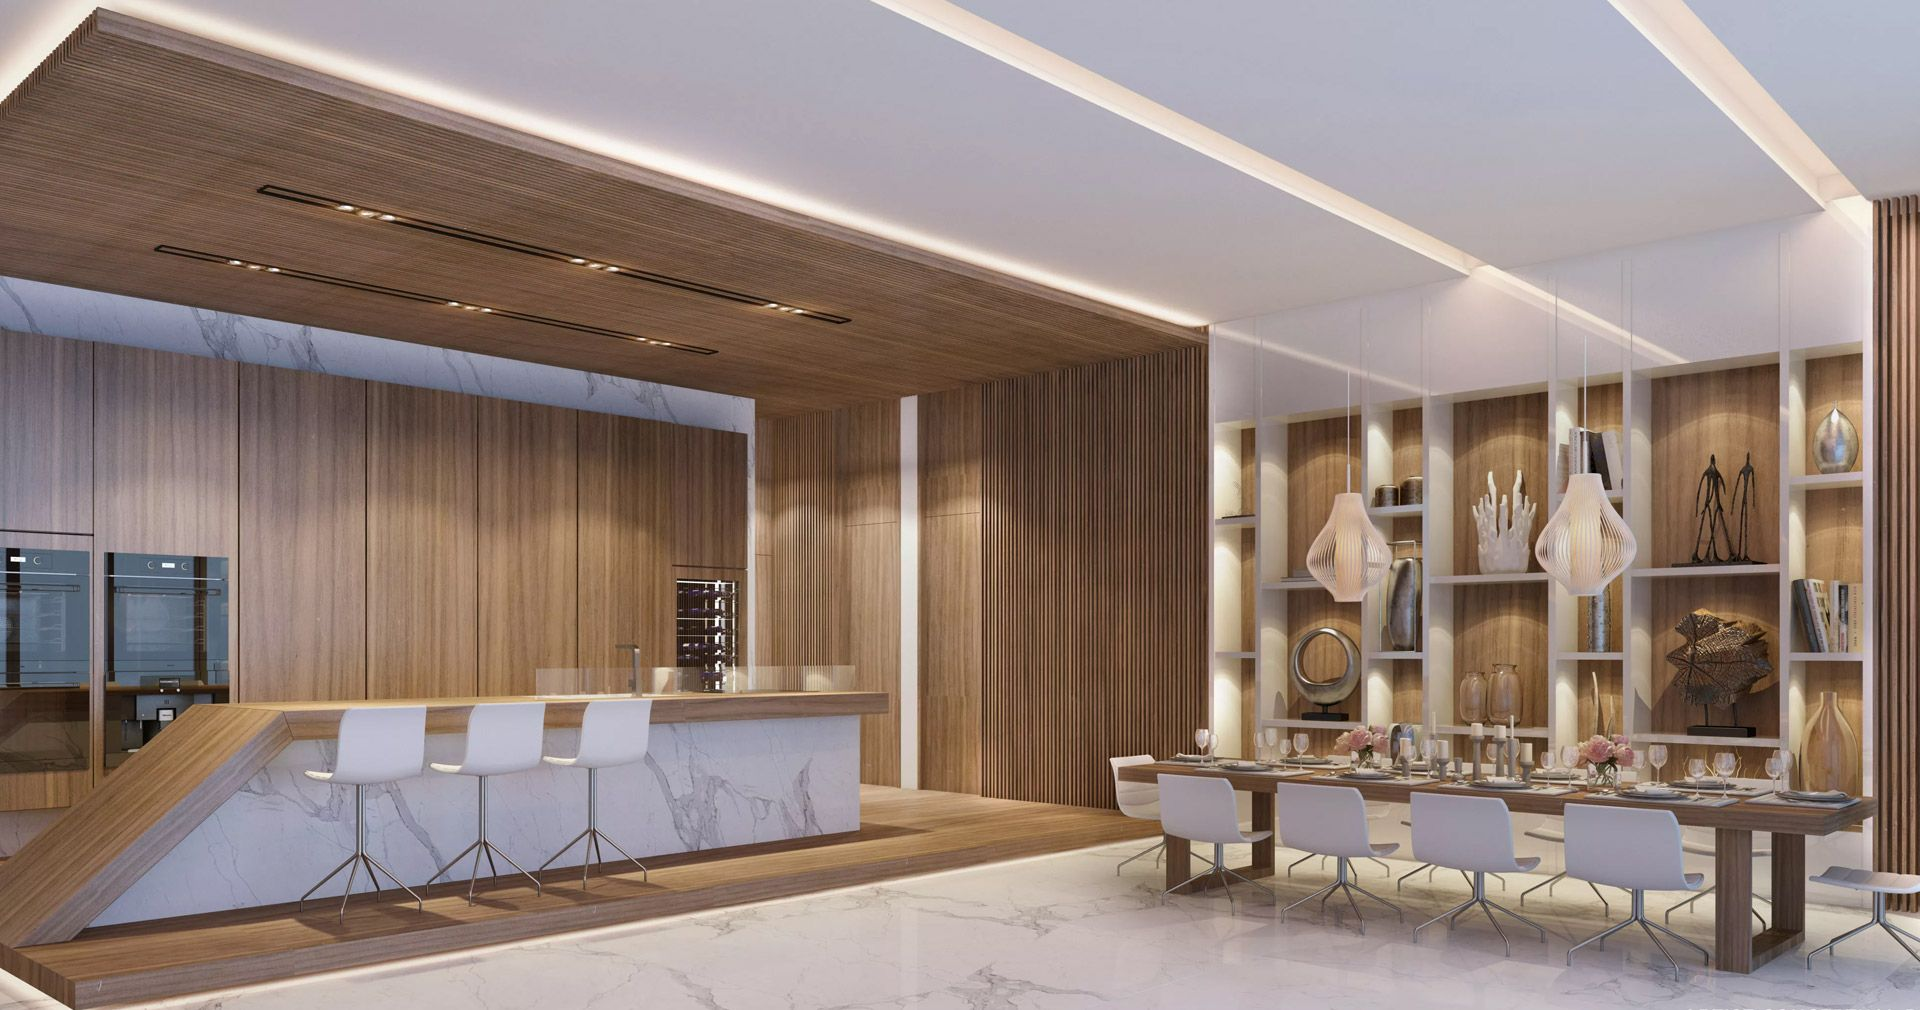 The Impressive Muse Residences Came To Sunny Isles To